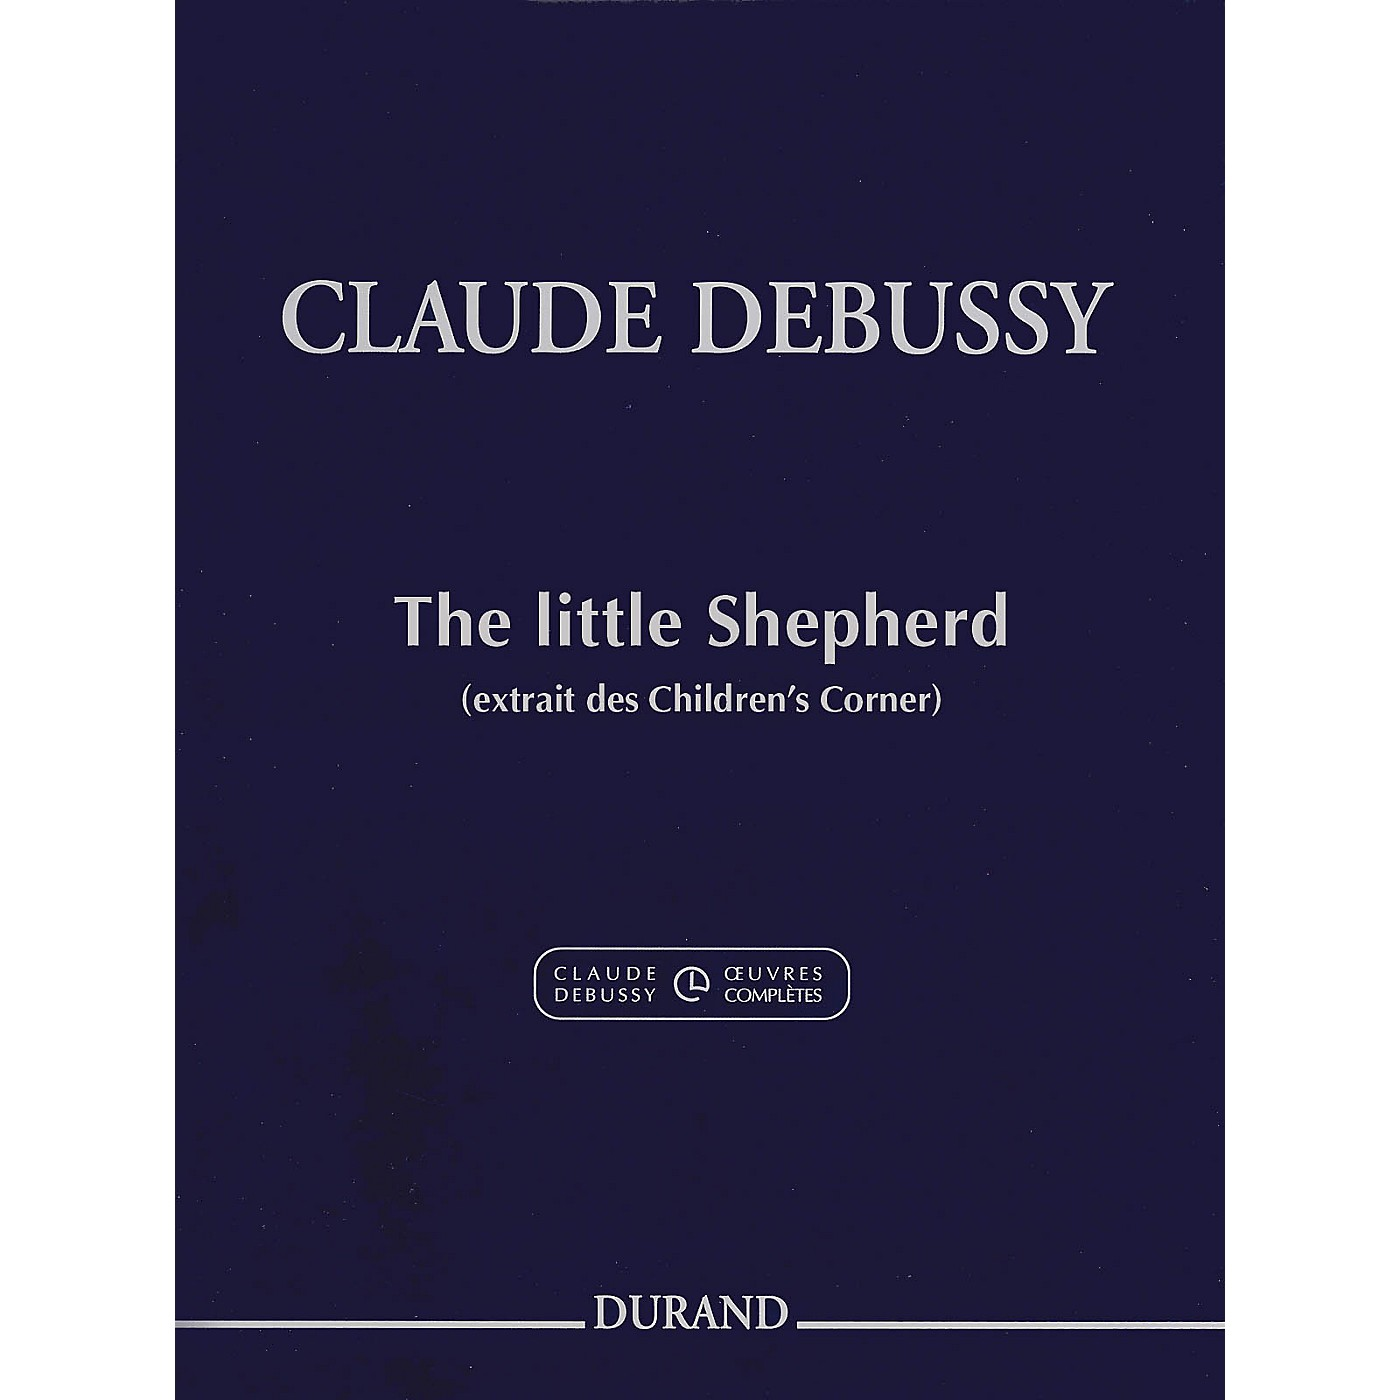 Durand Claude Debussy The Little Shepherd from Children's Corner For Piano thumbnail